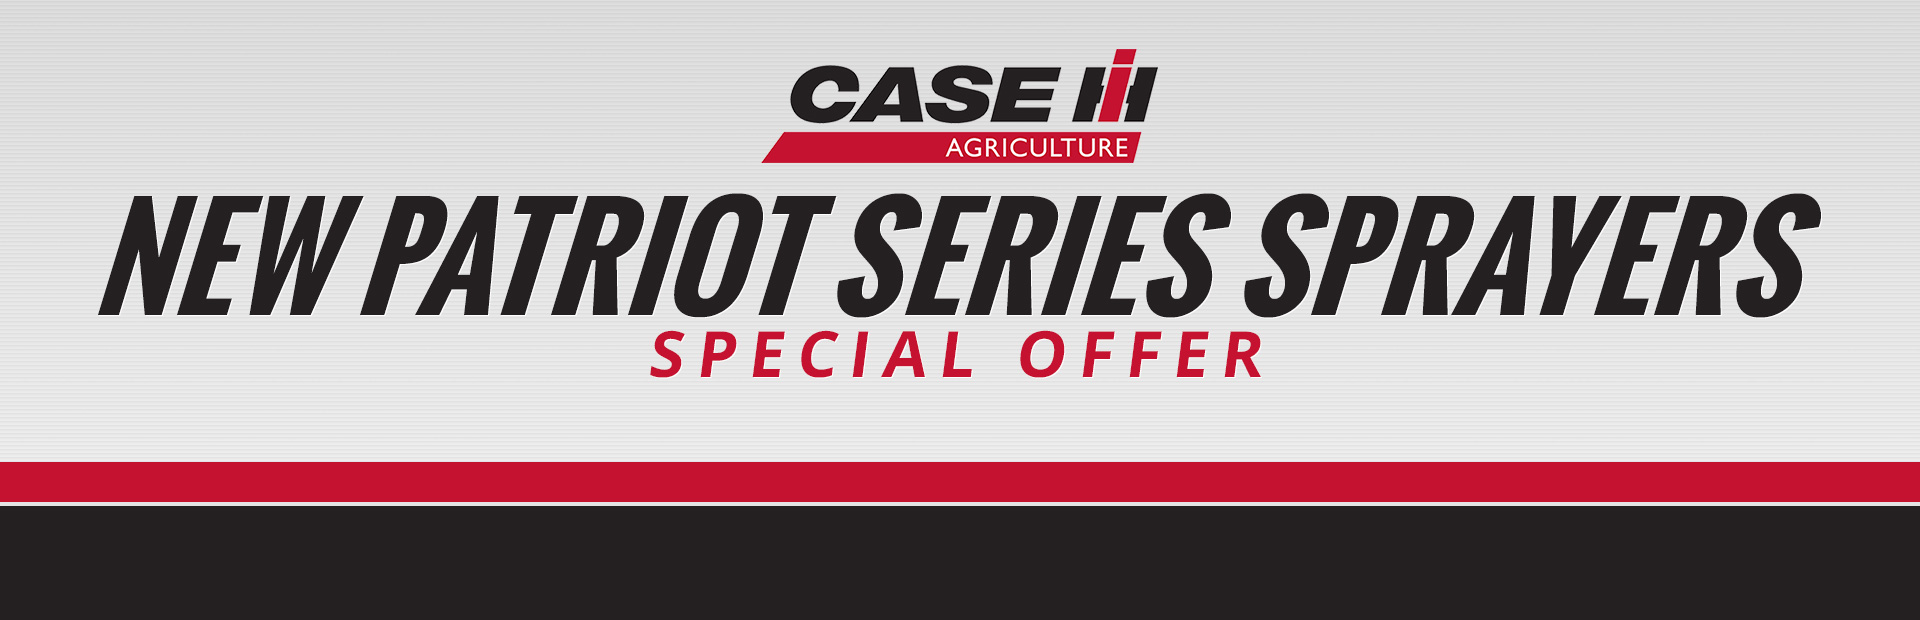 Case IH: New Patriot Series Sprayers Special Offer